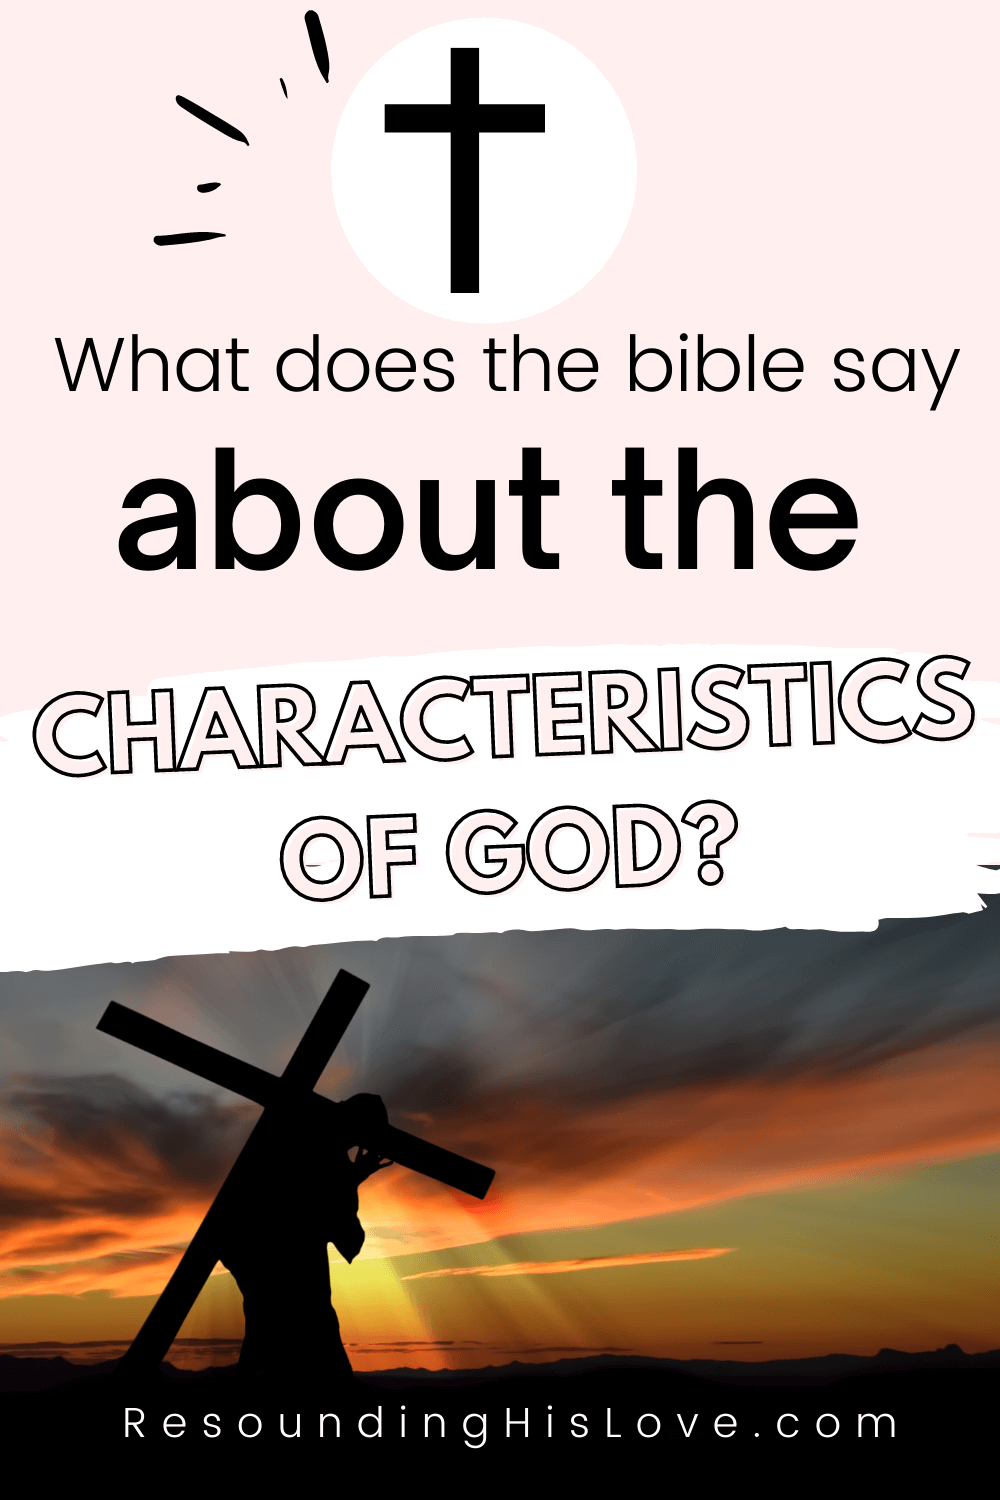 Jesus carrying a cross on His shoulders with a sunset background with text What Does the Bible Say About the Characteristics of God